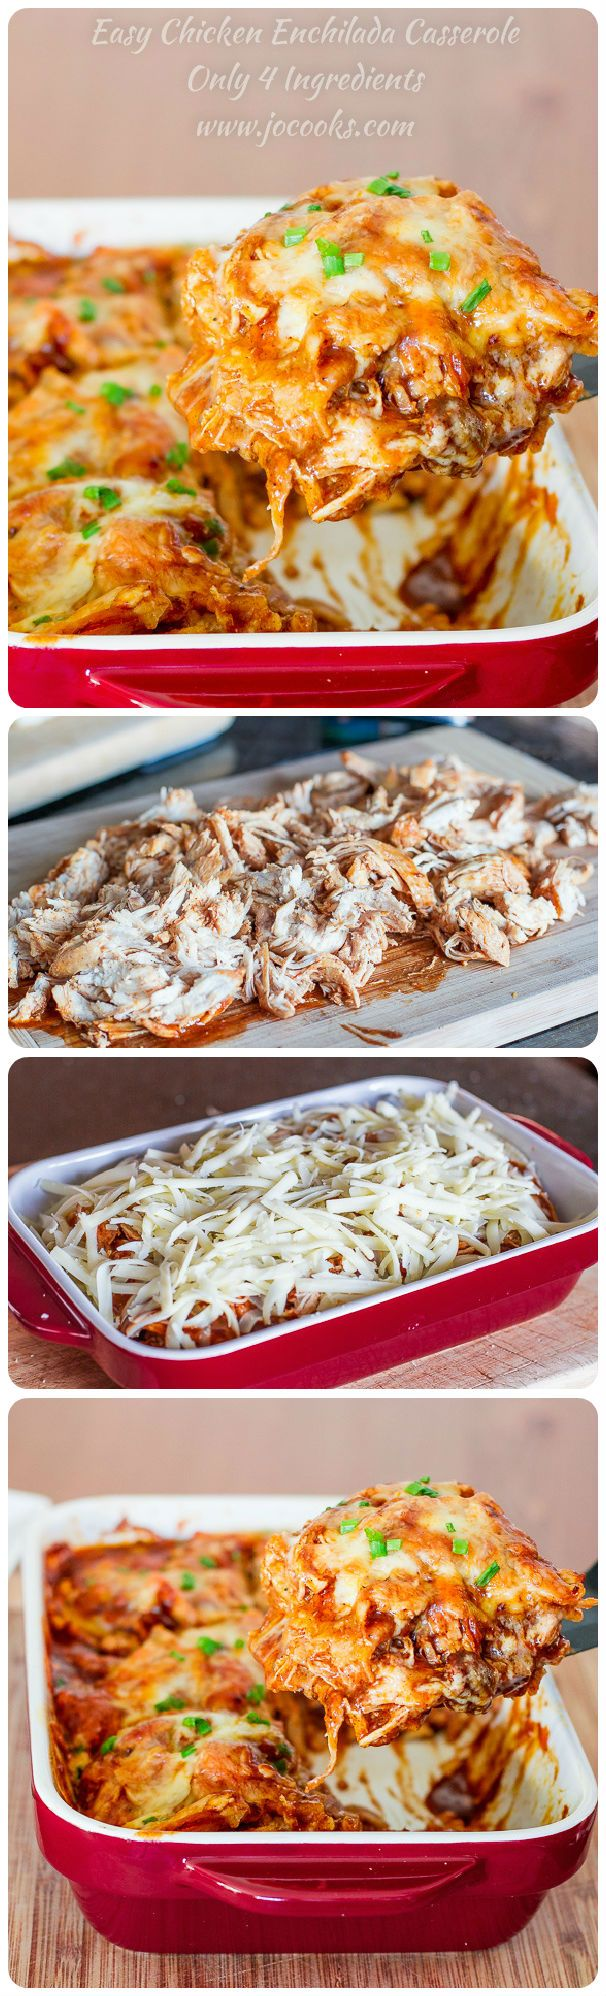 Easy Chicken Enchilada Casserole – 4 ingredients is all it takes to make this popular Mexican dish. It's cheesy, it's spicy, it's sinfully delicious.: